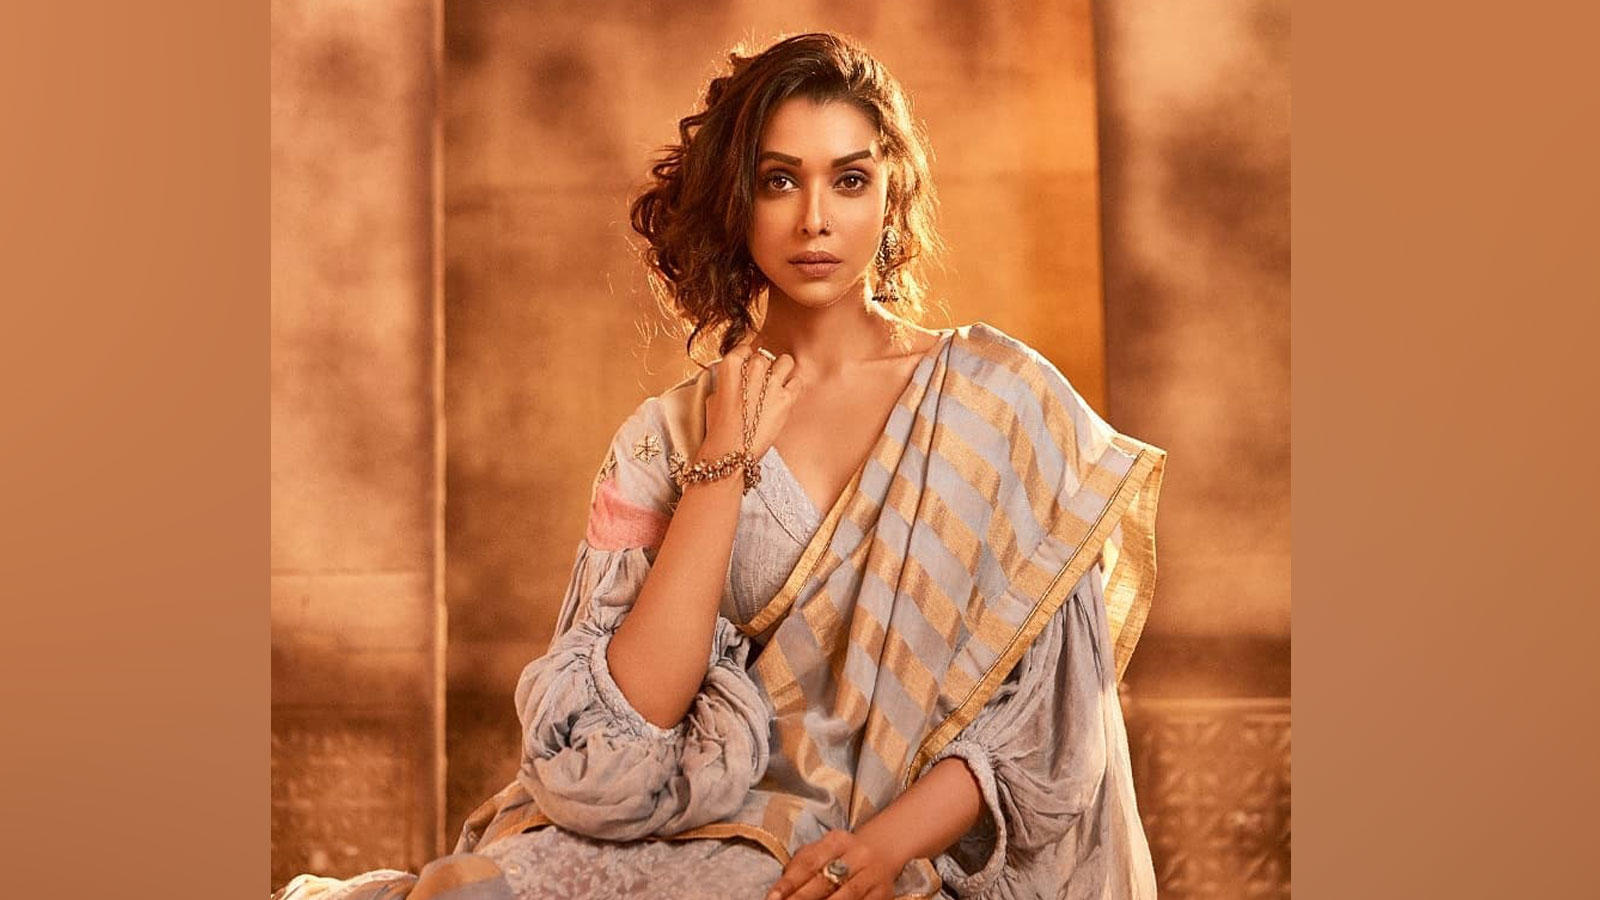 padmaavat-actress-anupriya-goenka-lists-her-favorite-monsoon-tracks-and-sings-one-special-number-watch-video